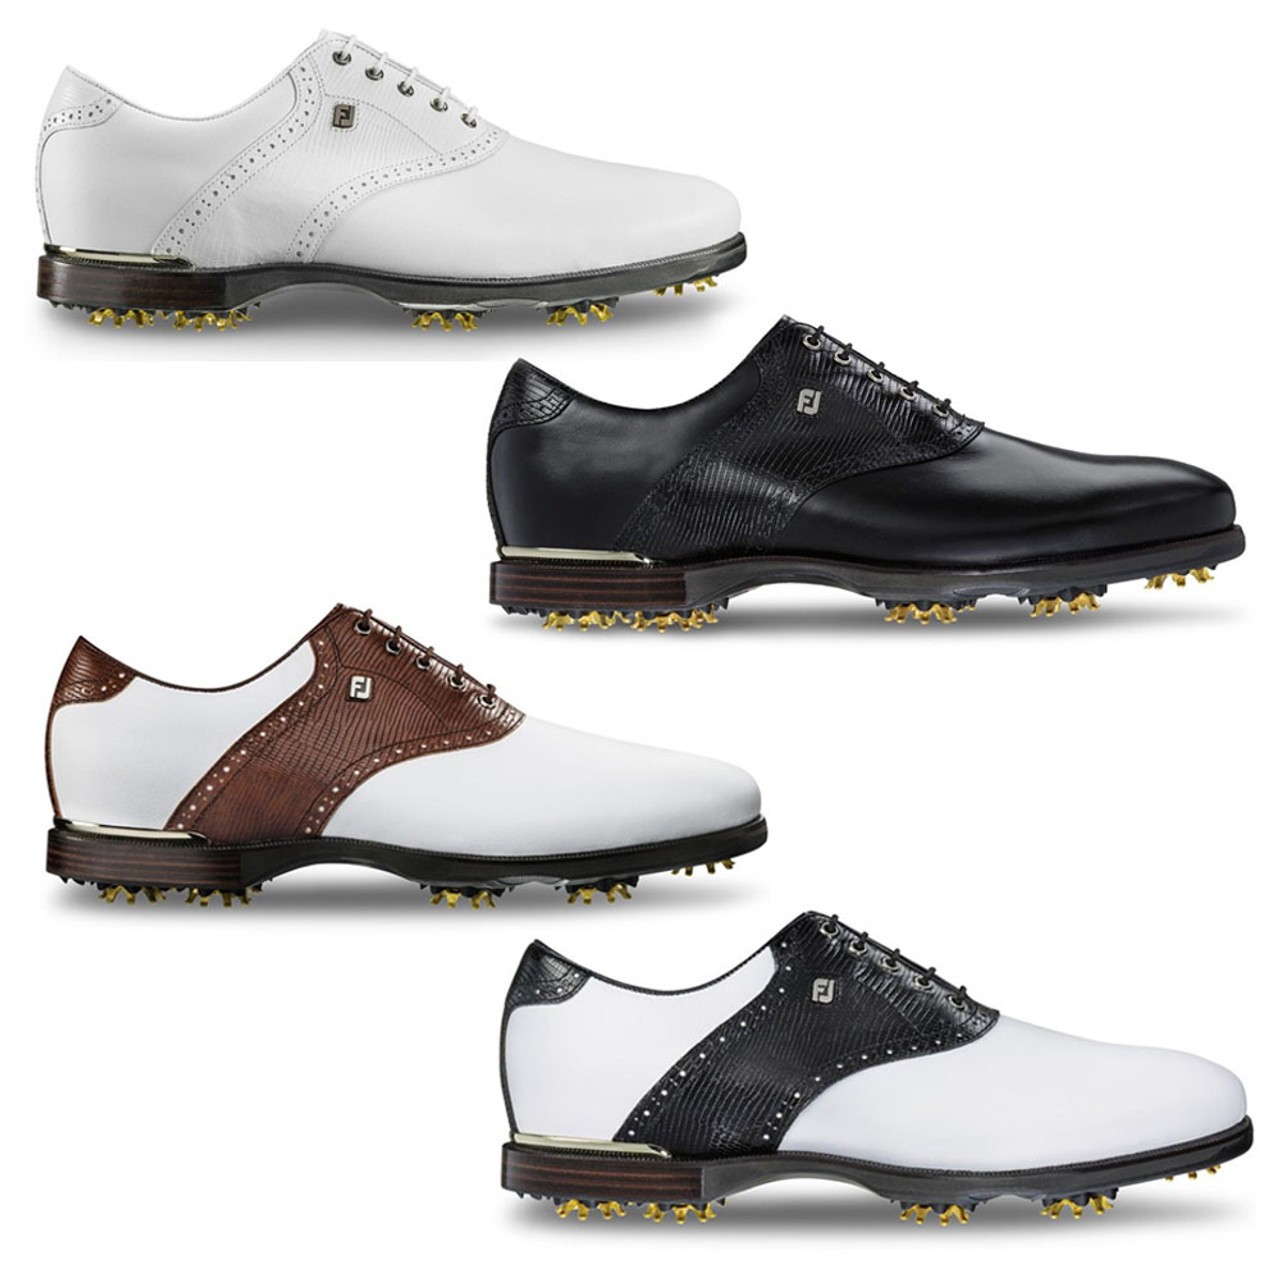 FootJoy Icon Black Leather Golf Shoes